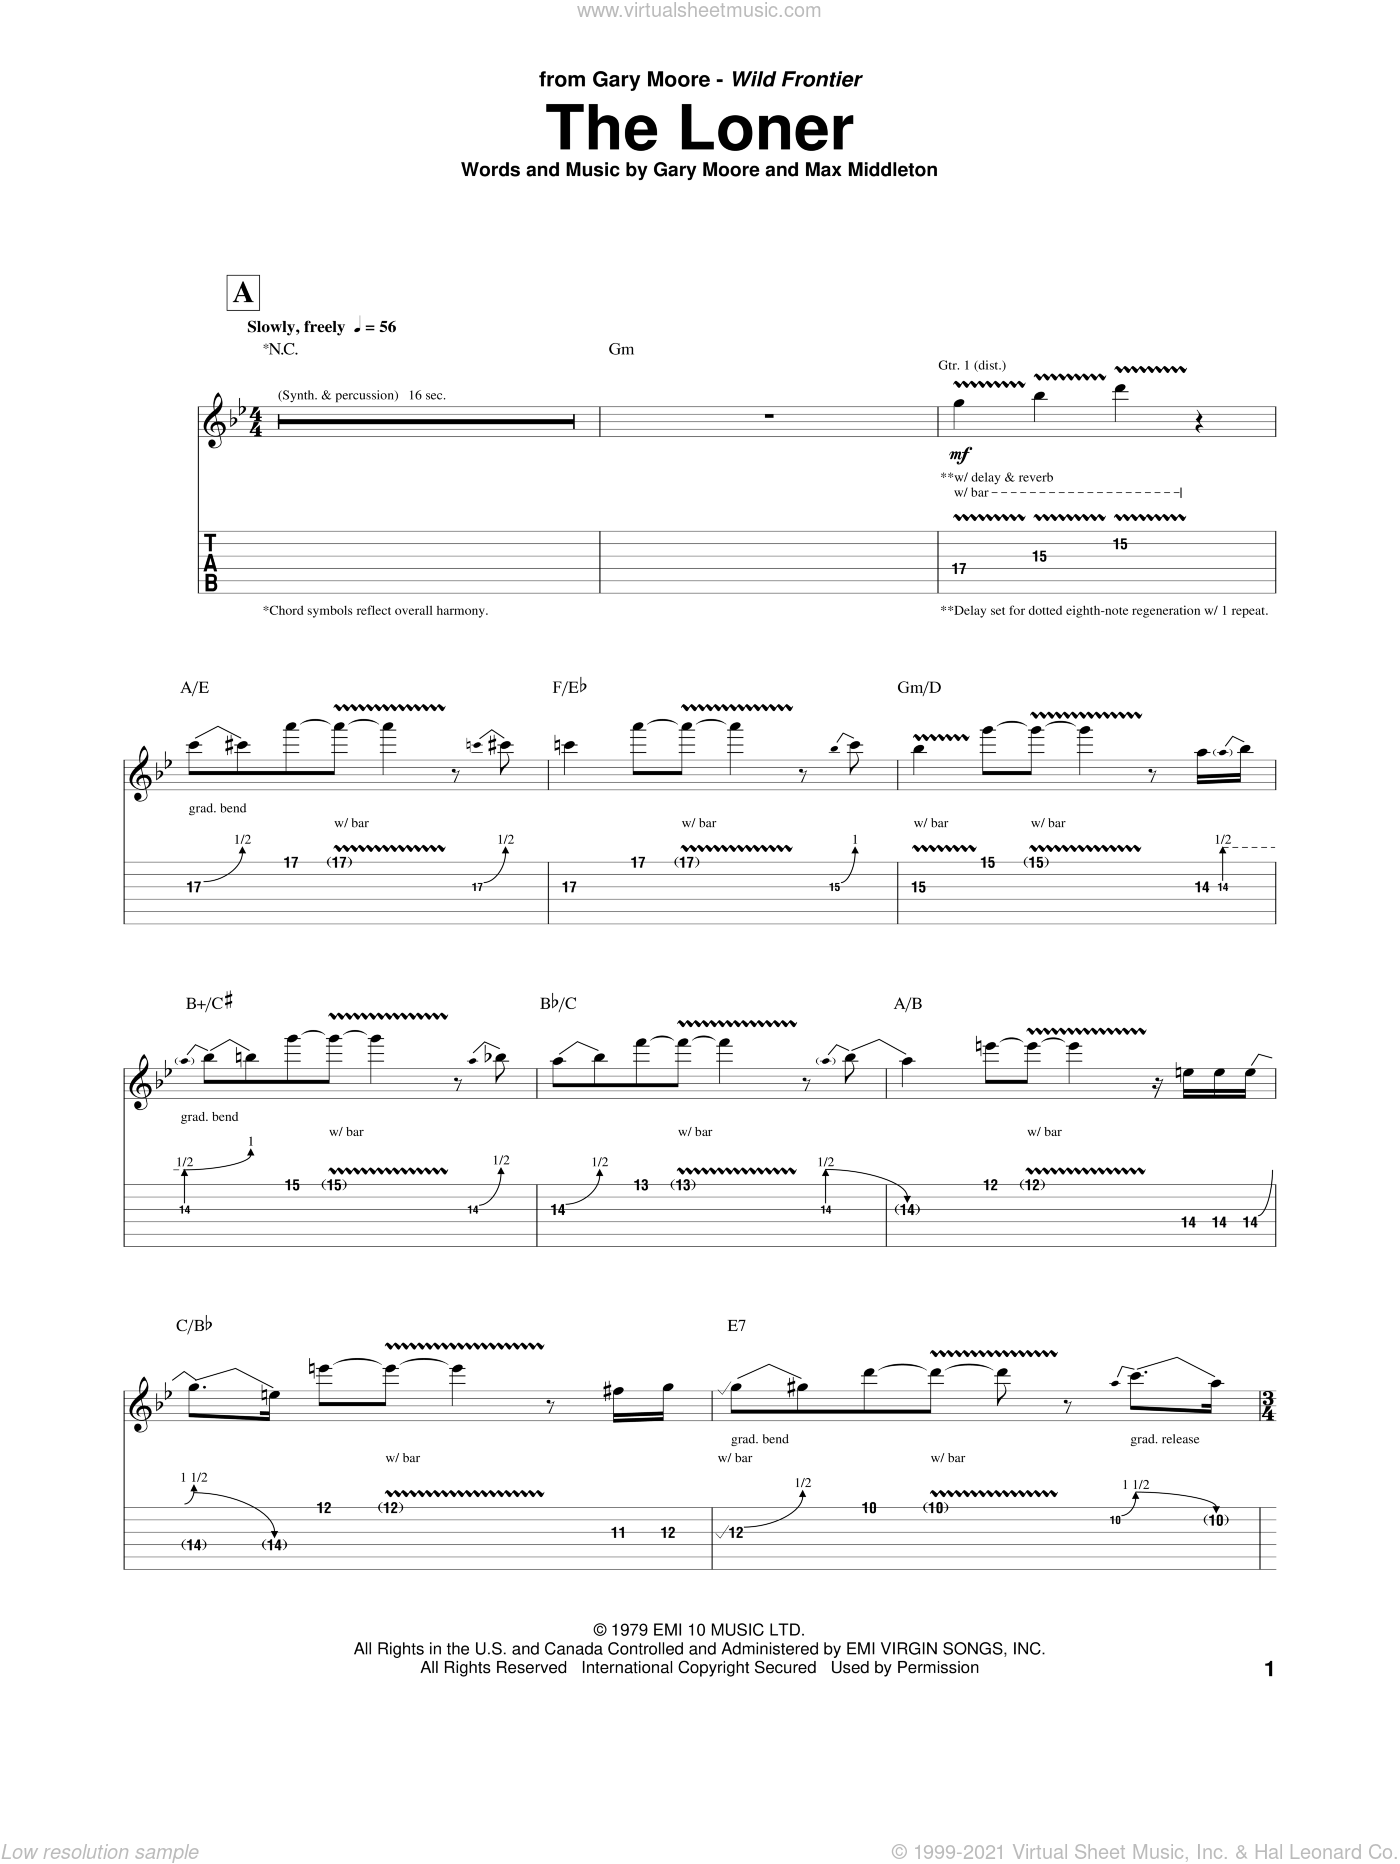 The Loner sheet music for guitar (tablature) by Gary Moore and Max Middleton, intermediate skill level